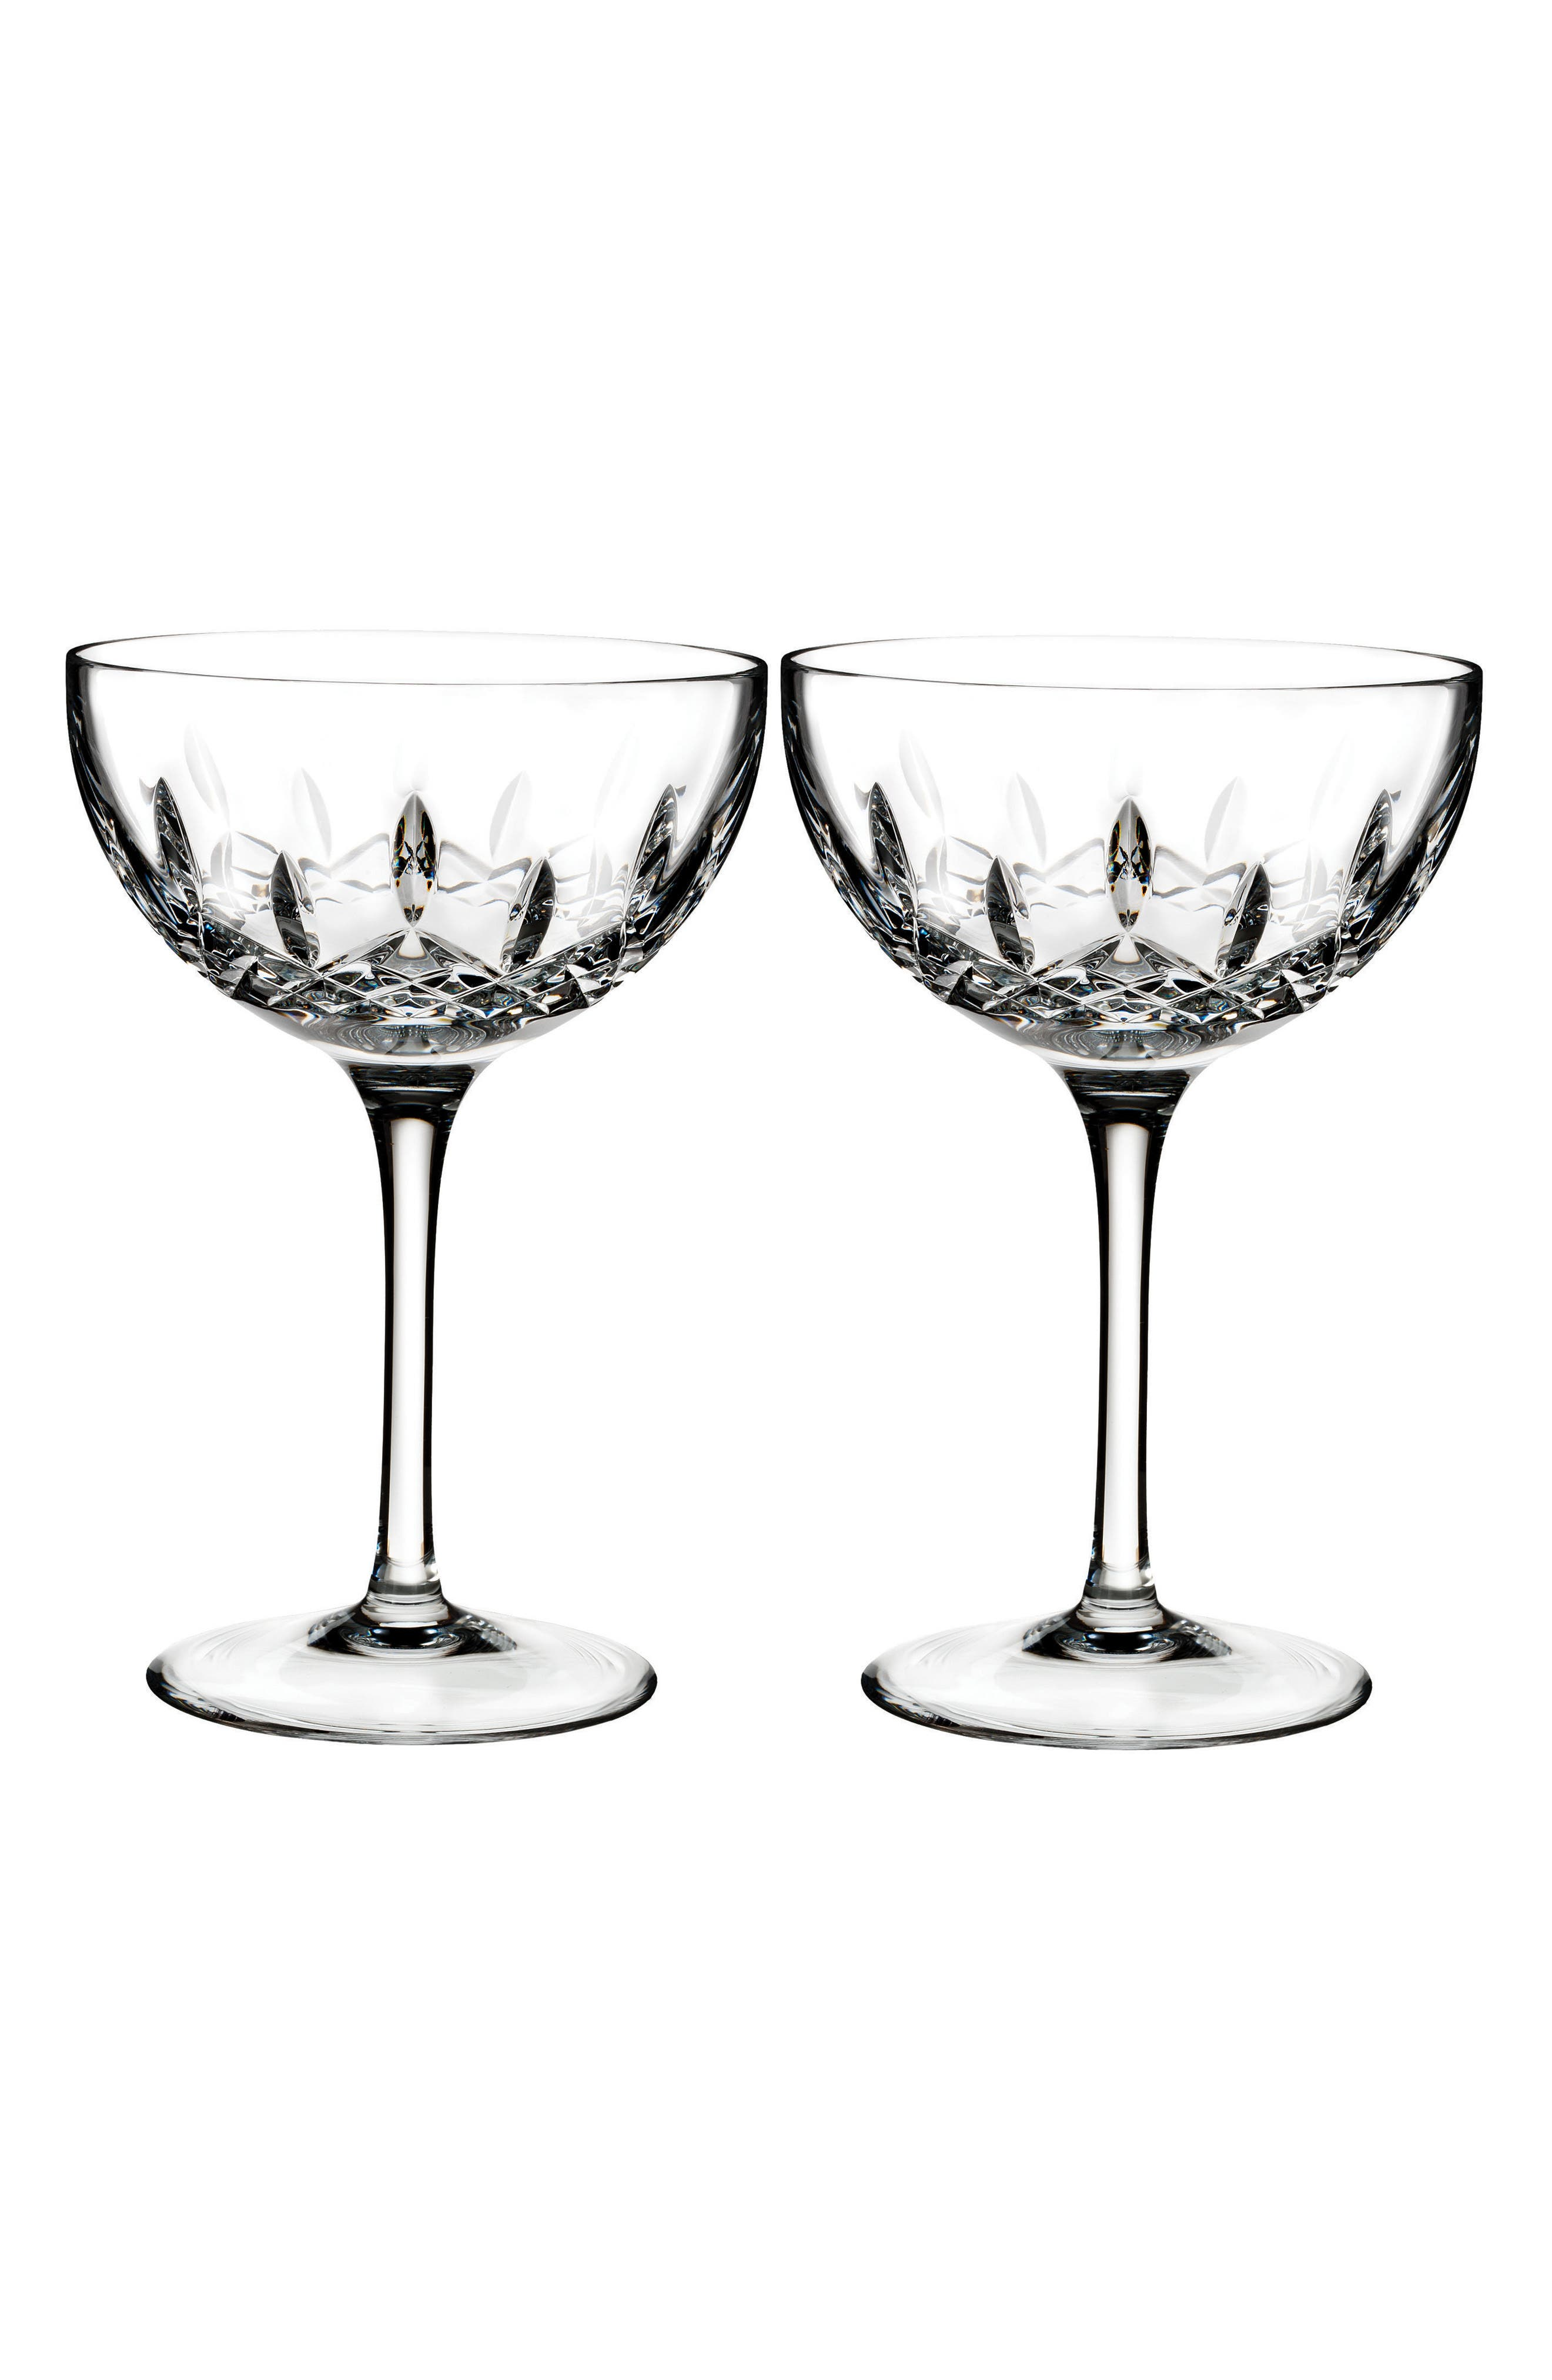 Waterford Lismore Pops Set of 2 Lead Crystal Cocktail Glasses